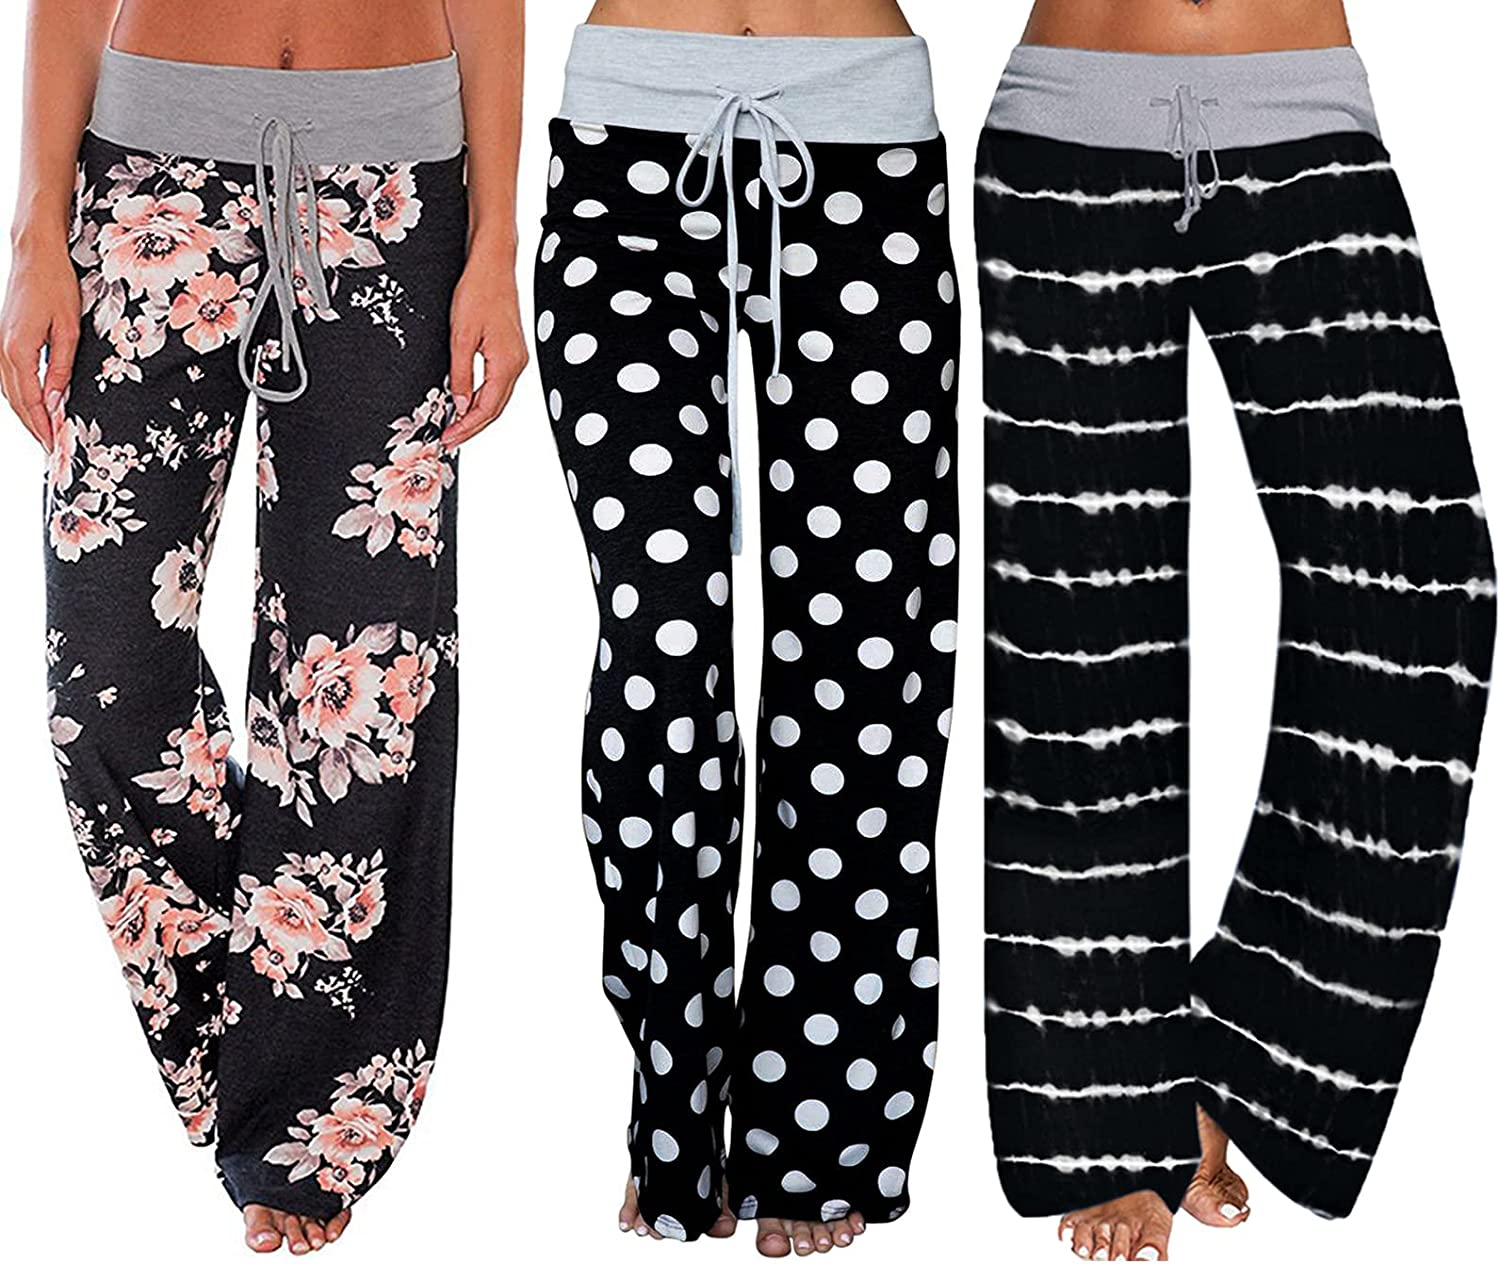 specialty shop iniber 3 Pack Women's Comfy Casual Floral Baltimore Mall Pants Pajama Dra Print